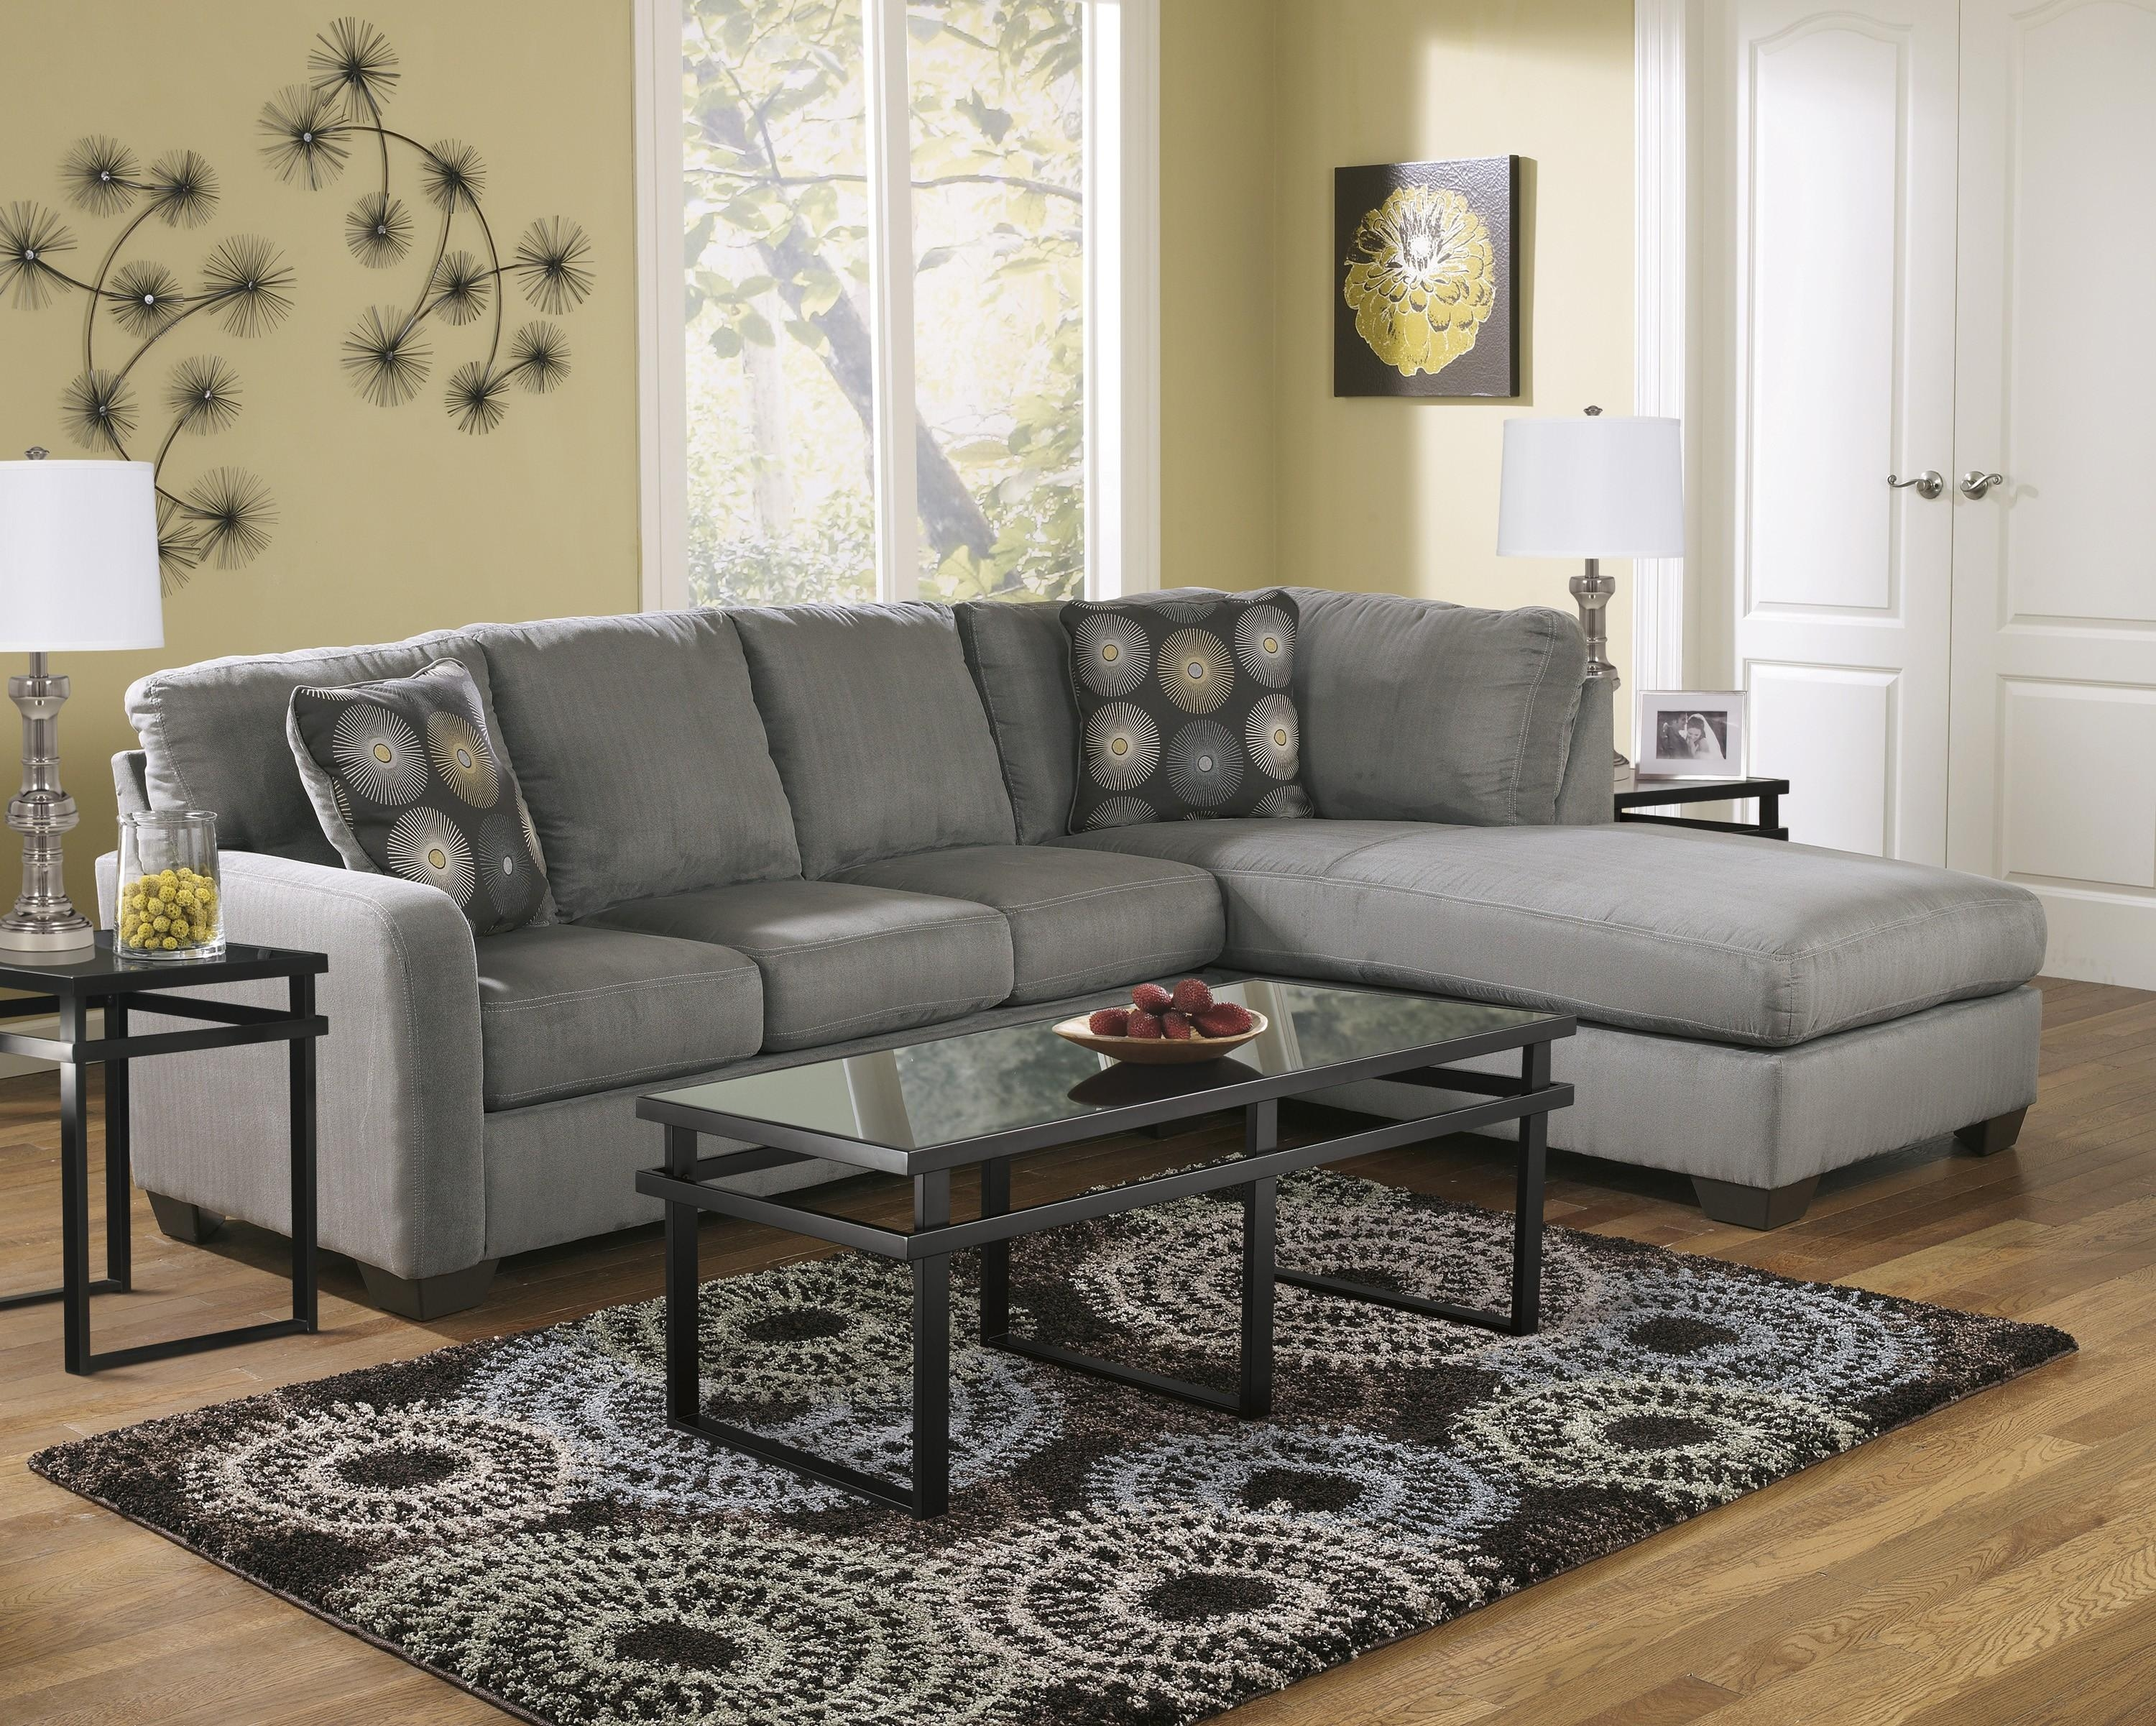 Zella Charcoal 2 Piece Sectional Sofa For $545.00 – Furnitureusa Intended For Small 2 Piece Sectional (Photo 2 of 20)